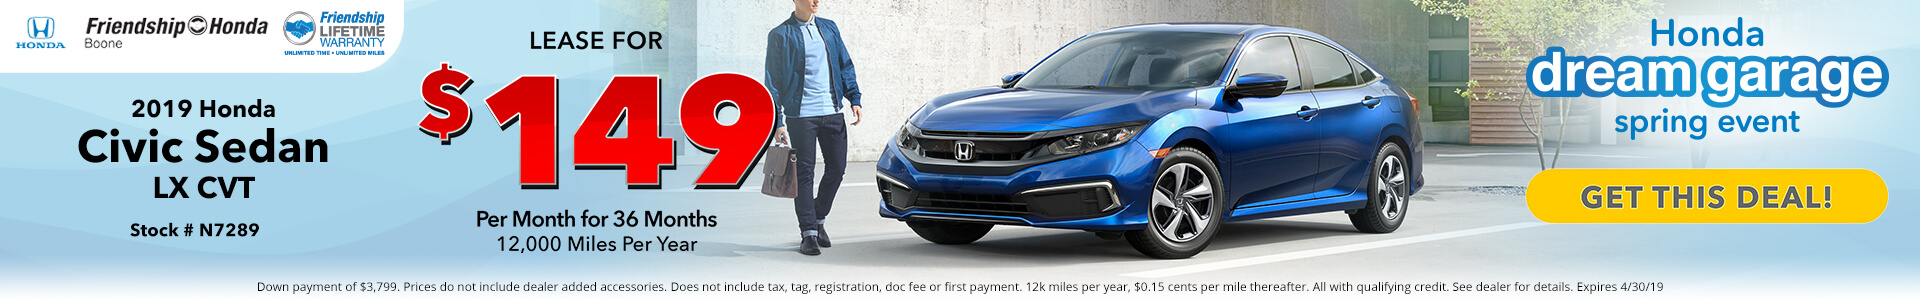 Honda Civic $149 Lease